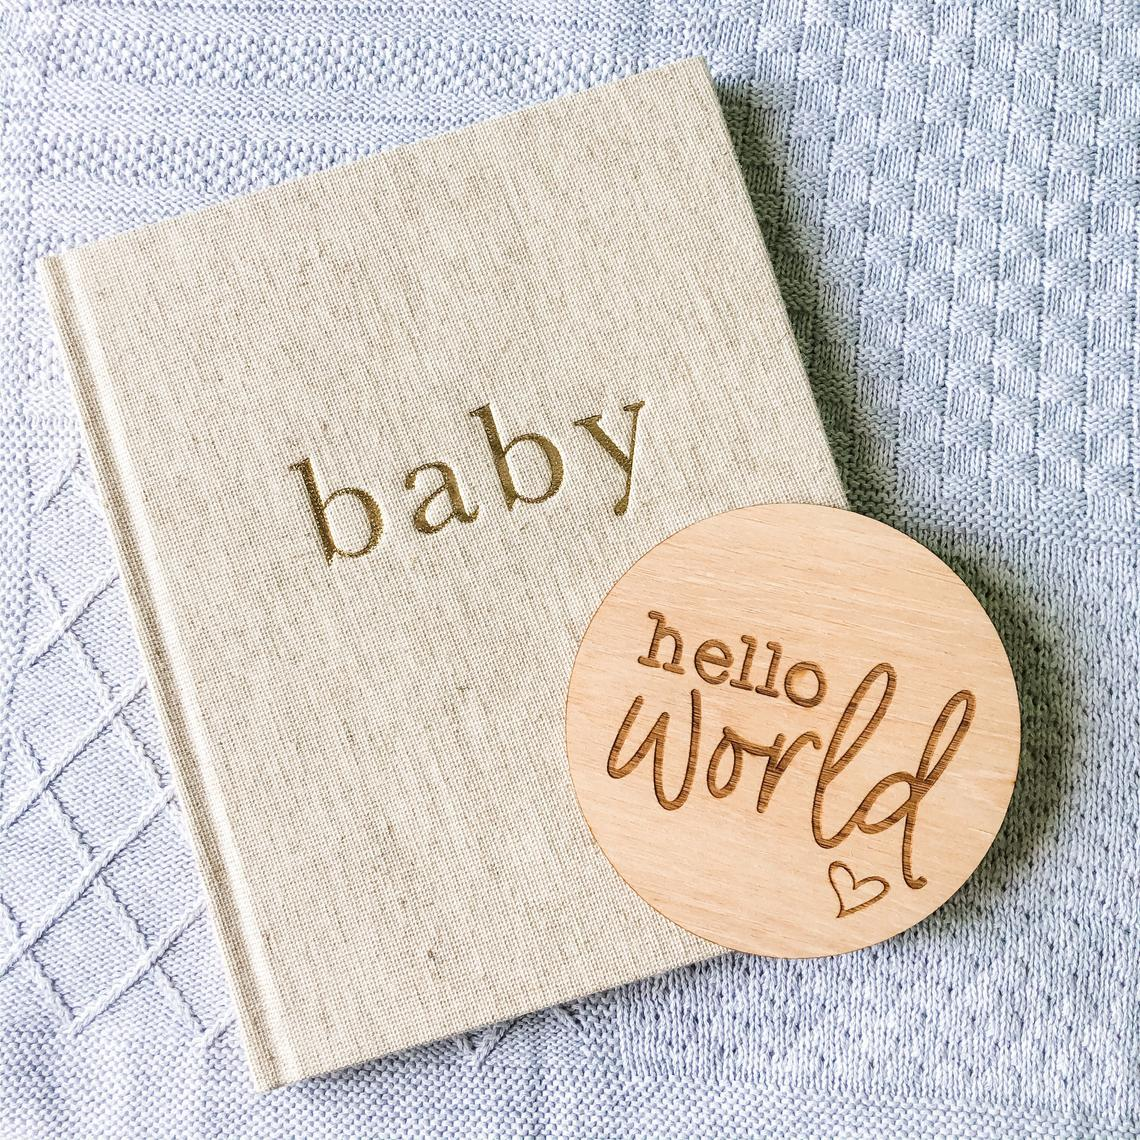 Hello World Baby Announcement Sign Heart Design (New Baby Arrival, Newborn Photo Prop)